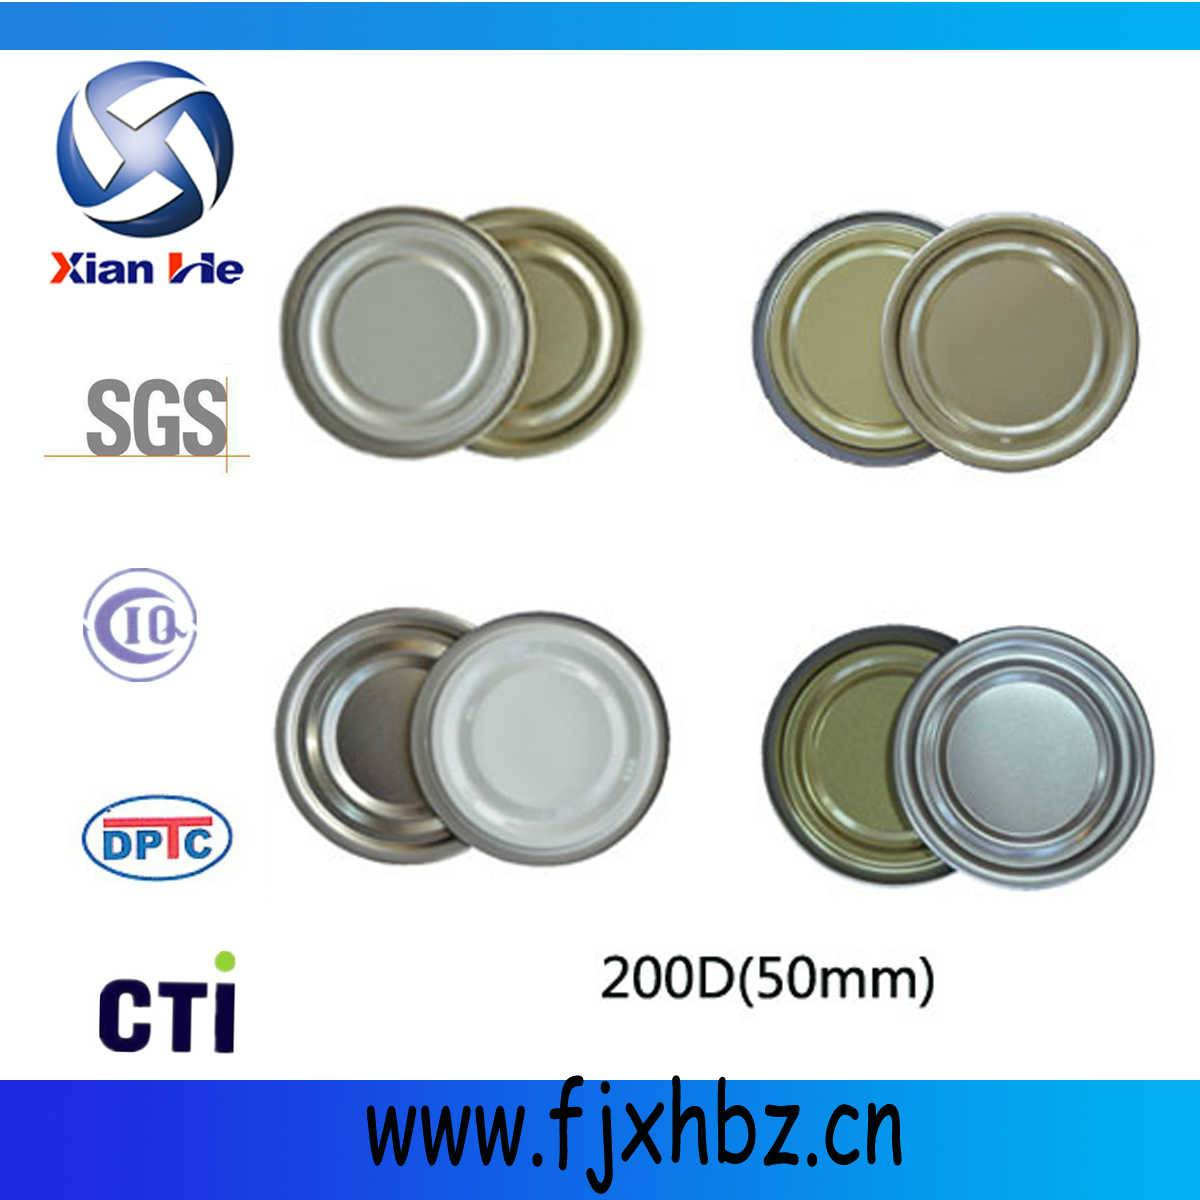 200D 50mm high quality tin can ends for canned food